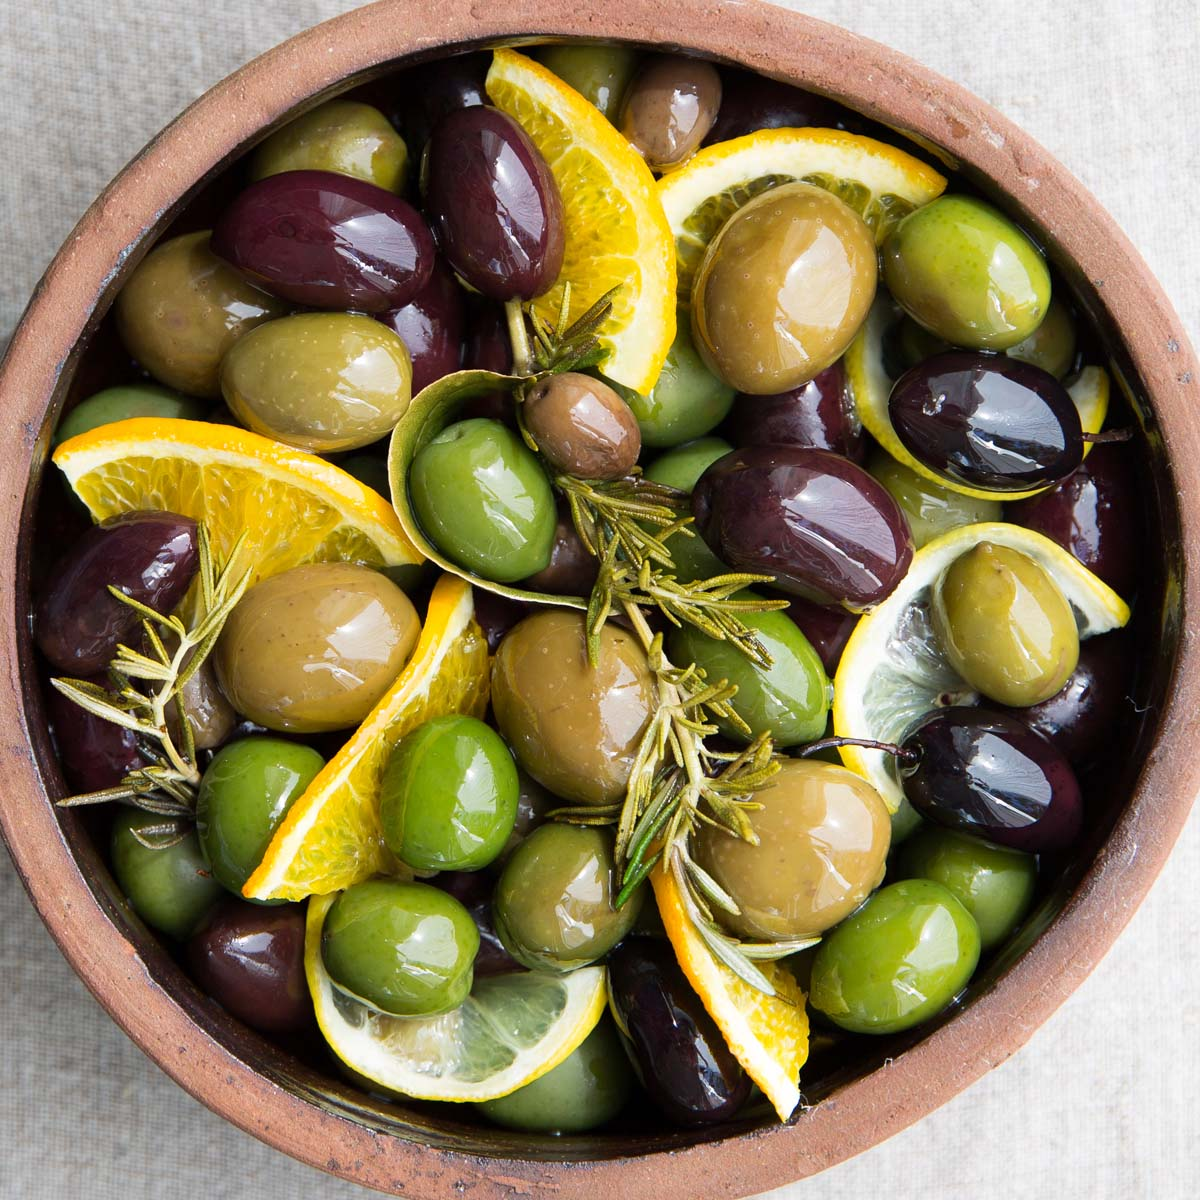 Fruits From Chile | Fruits From Chile